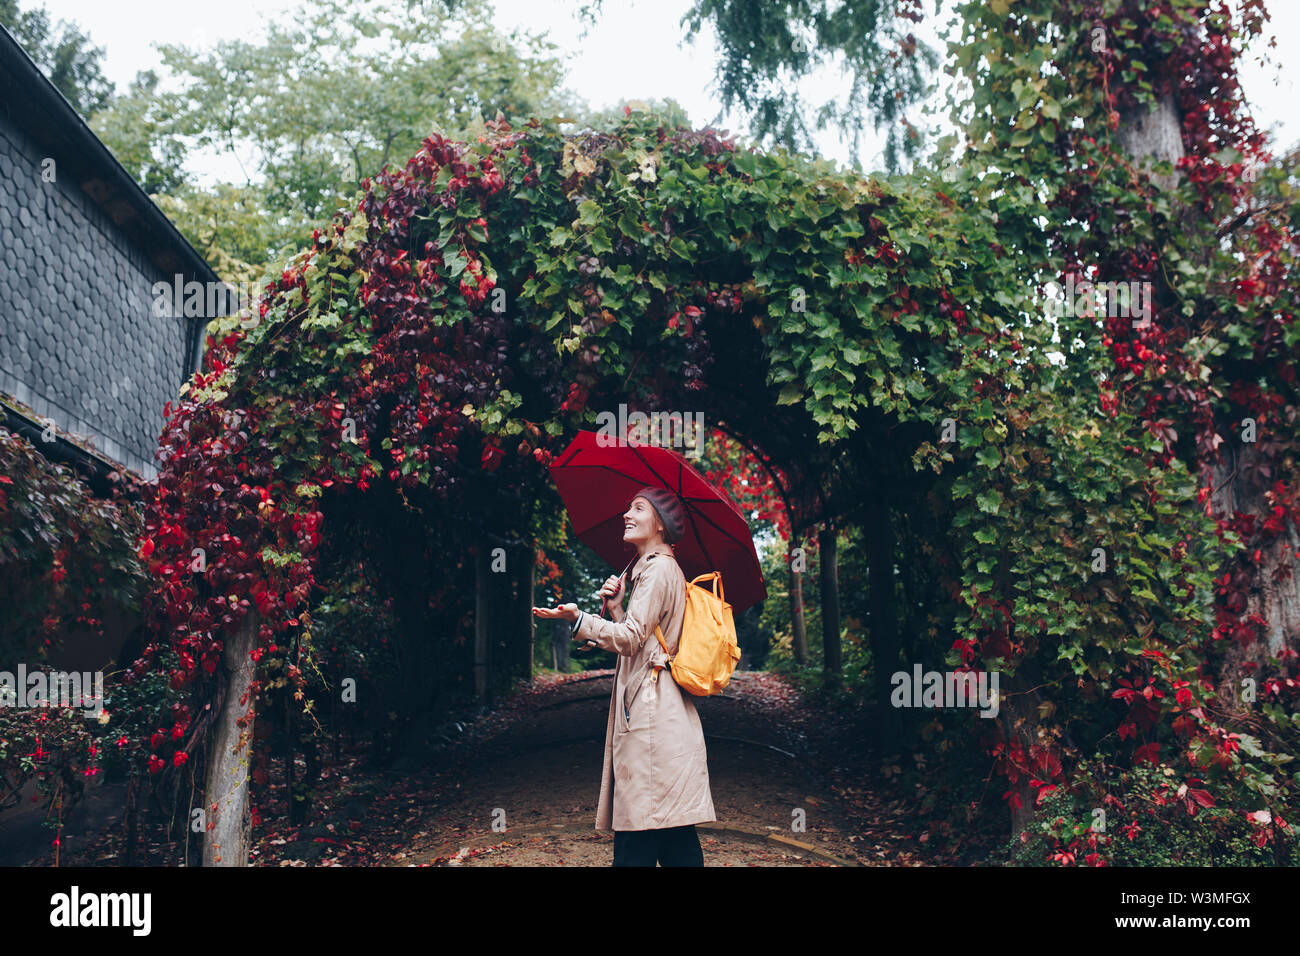 Woman holding umbrella by vine covered arch - Stock Image